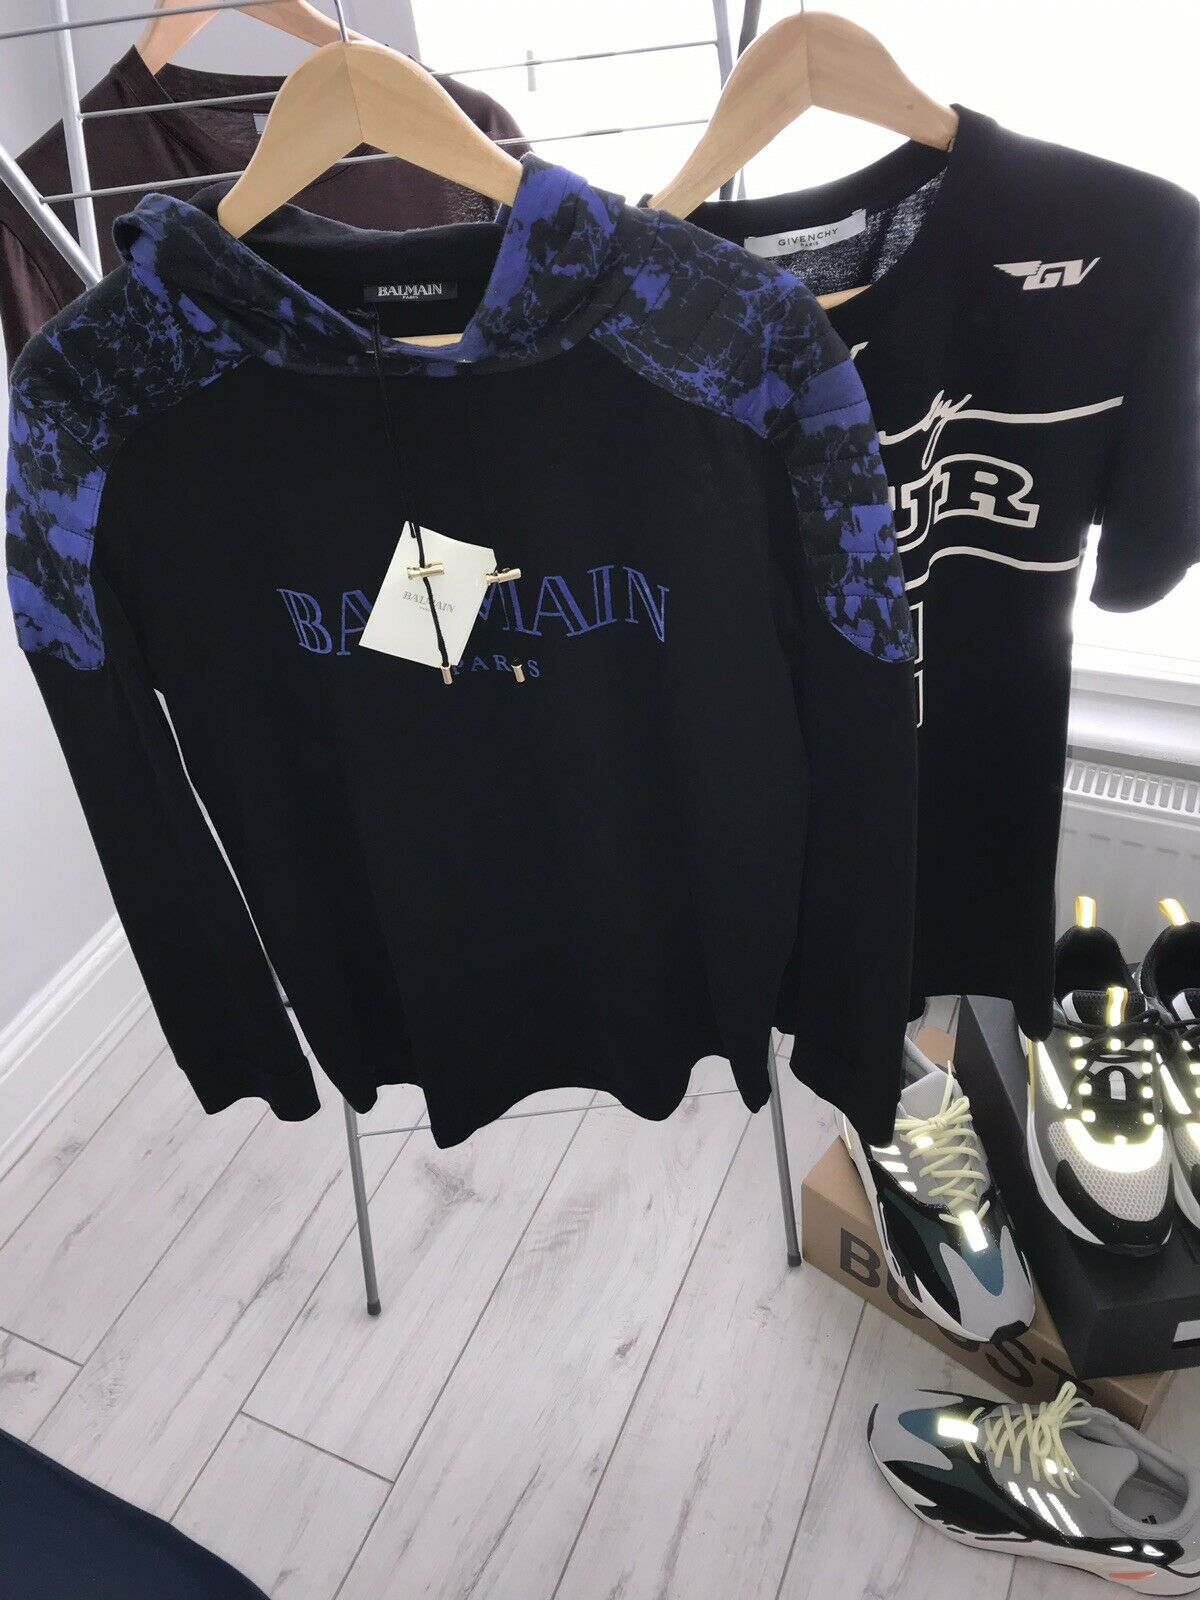 Balmain Hoodie - Authentic - Size M - Worn Once, With Tags - RRP